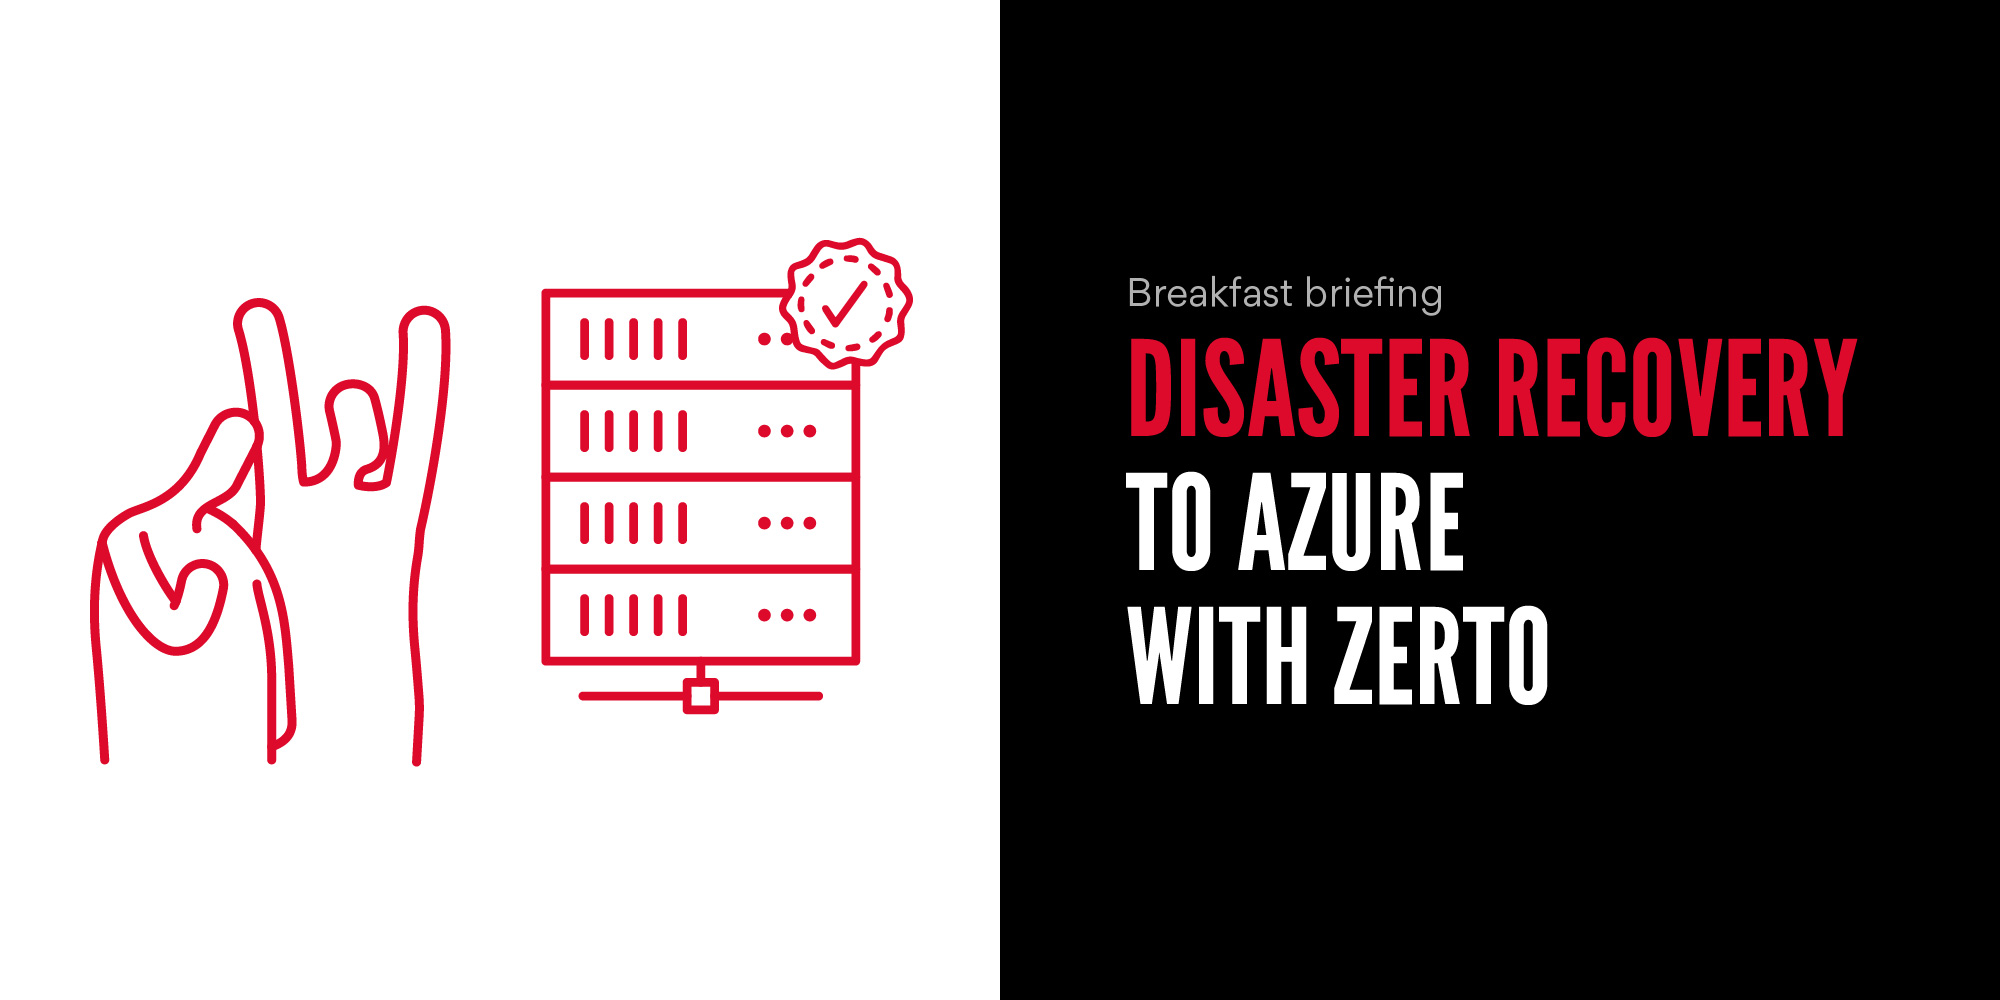 Disaster Recovery to Azure with Zerto